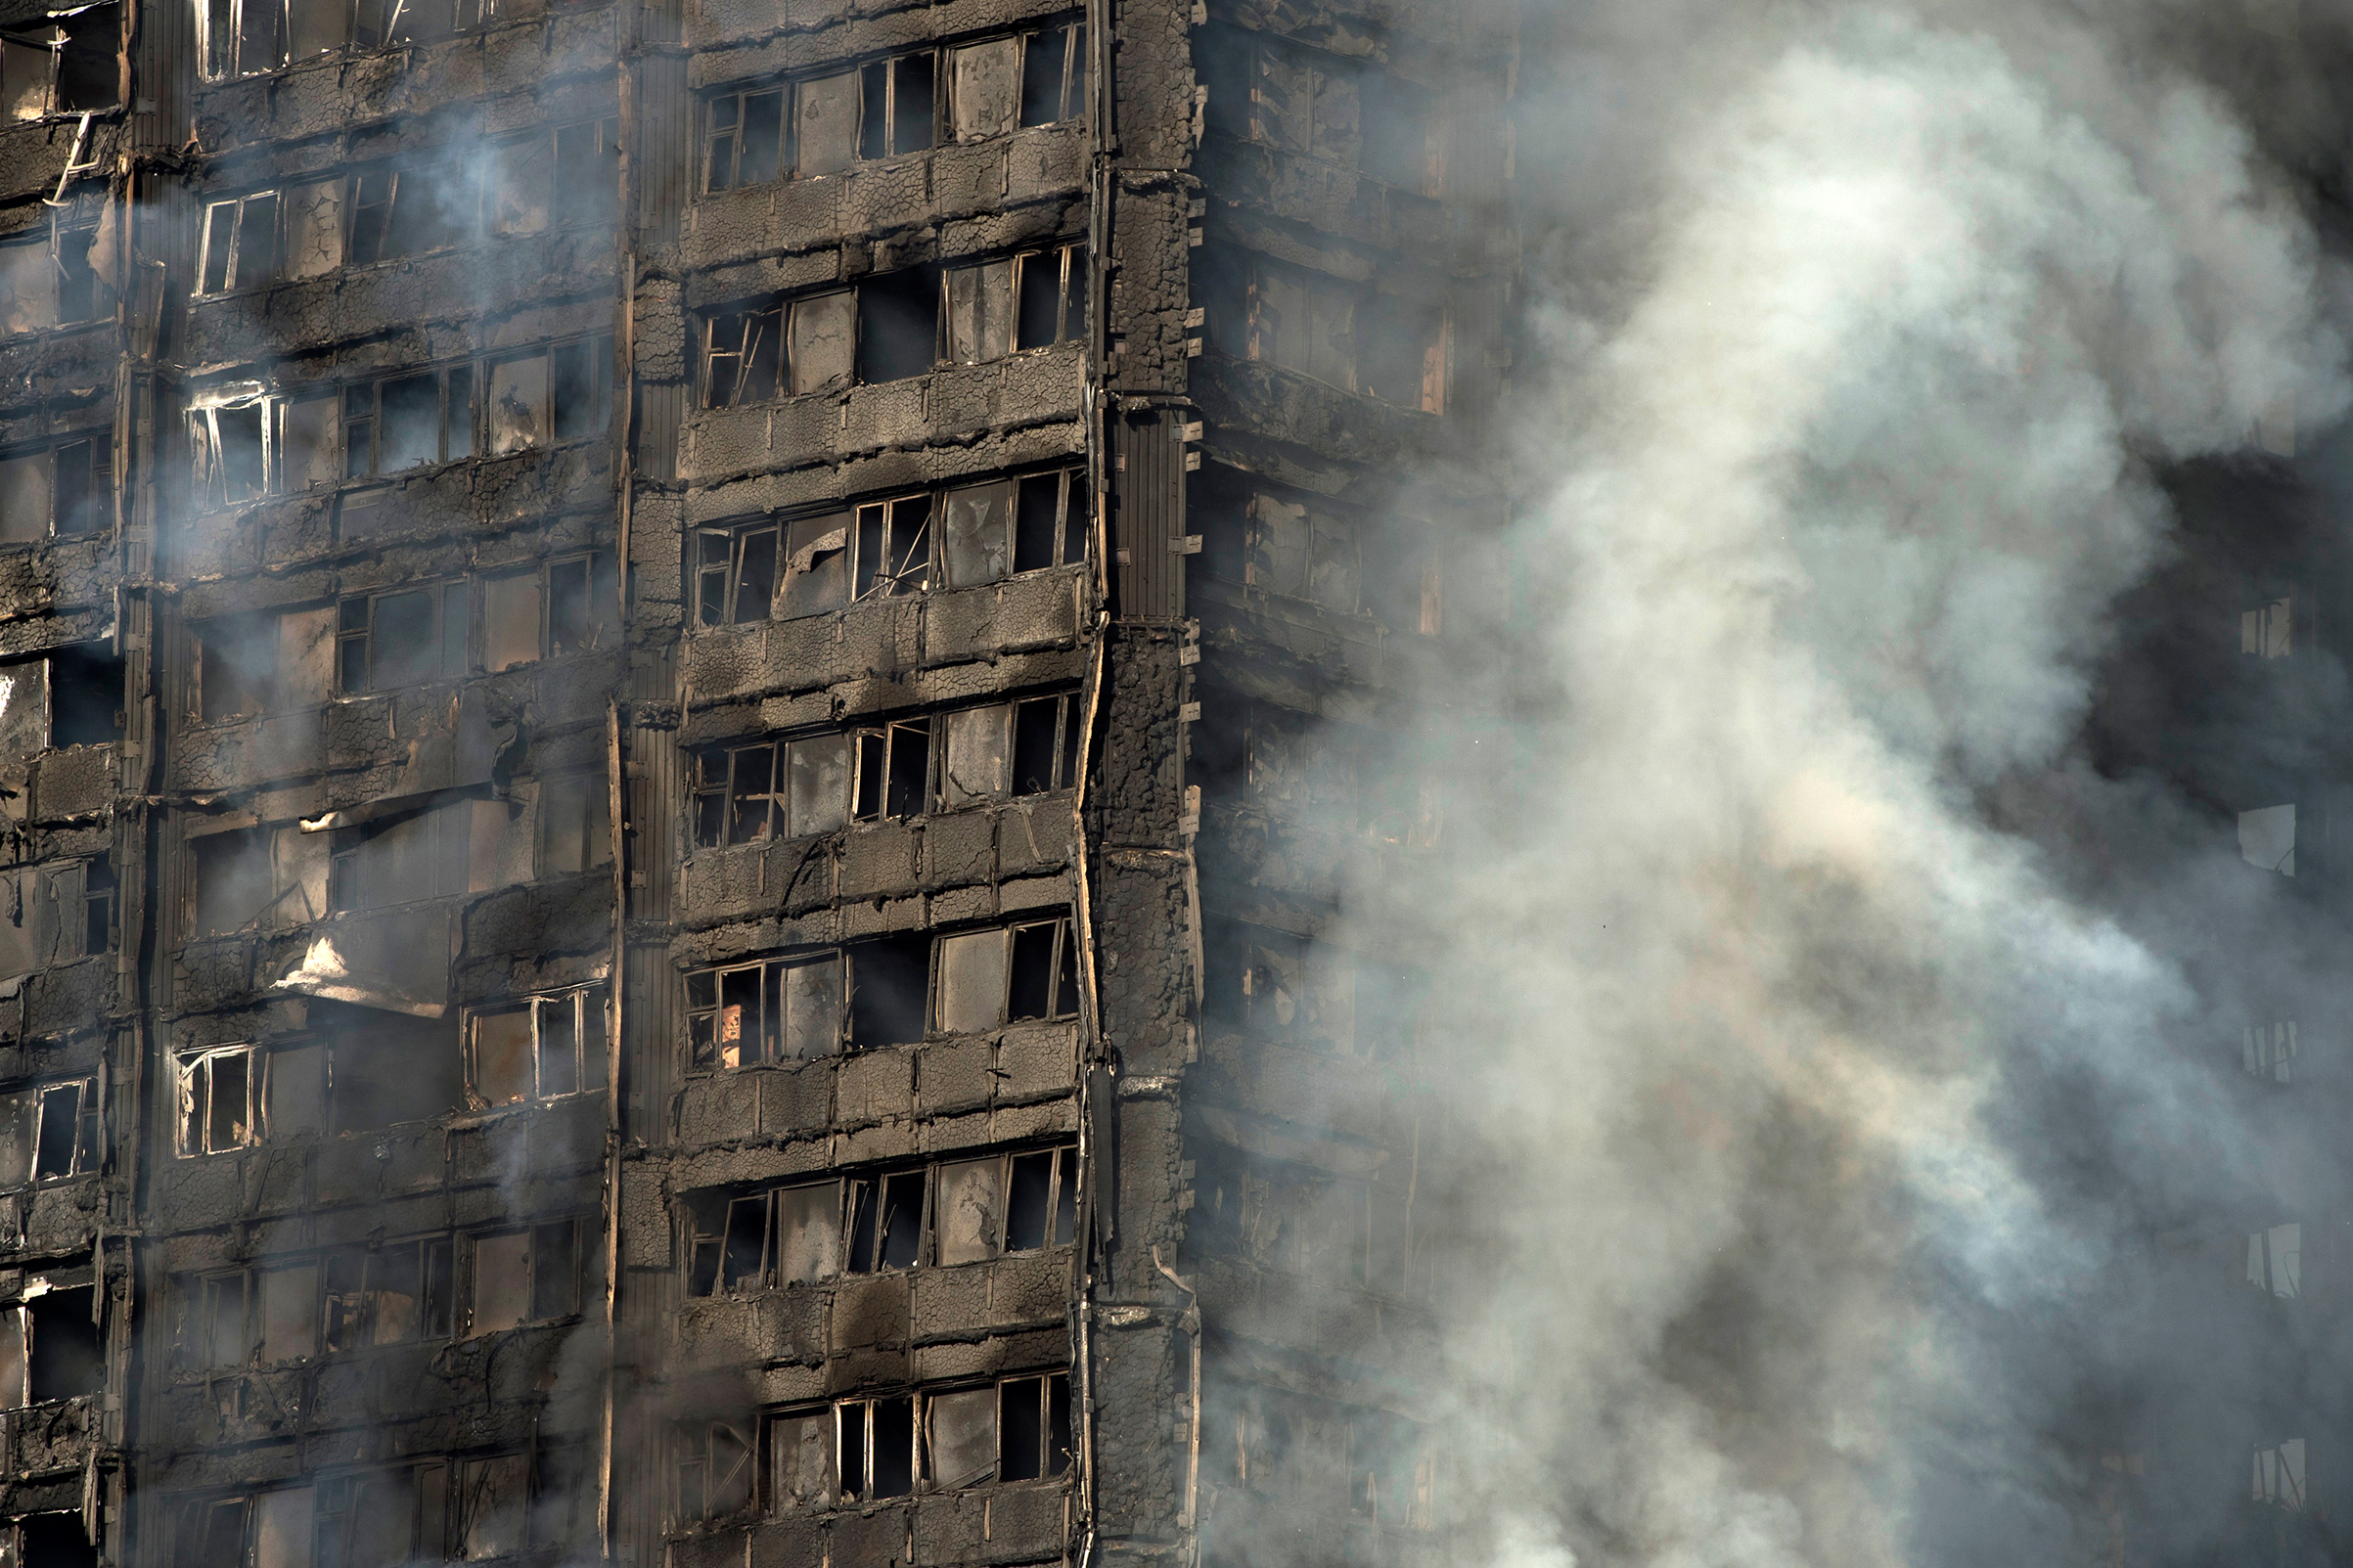 Smoke rises from the fire at the Grenfell Tower apartment block in North Kensington, London, on June 14, 2017.